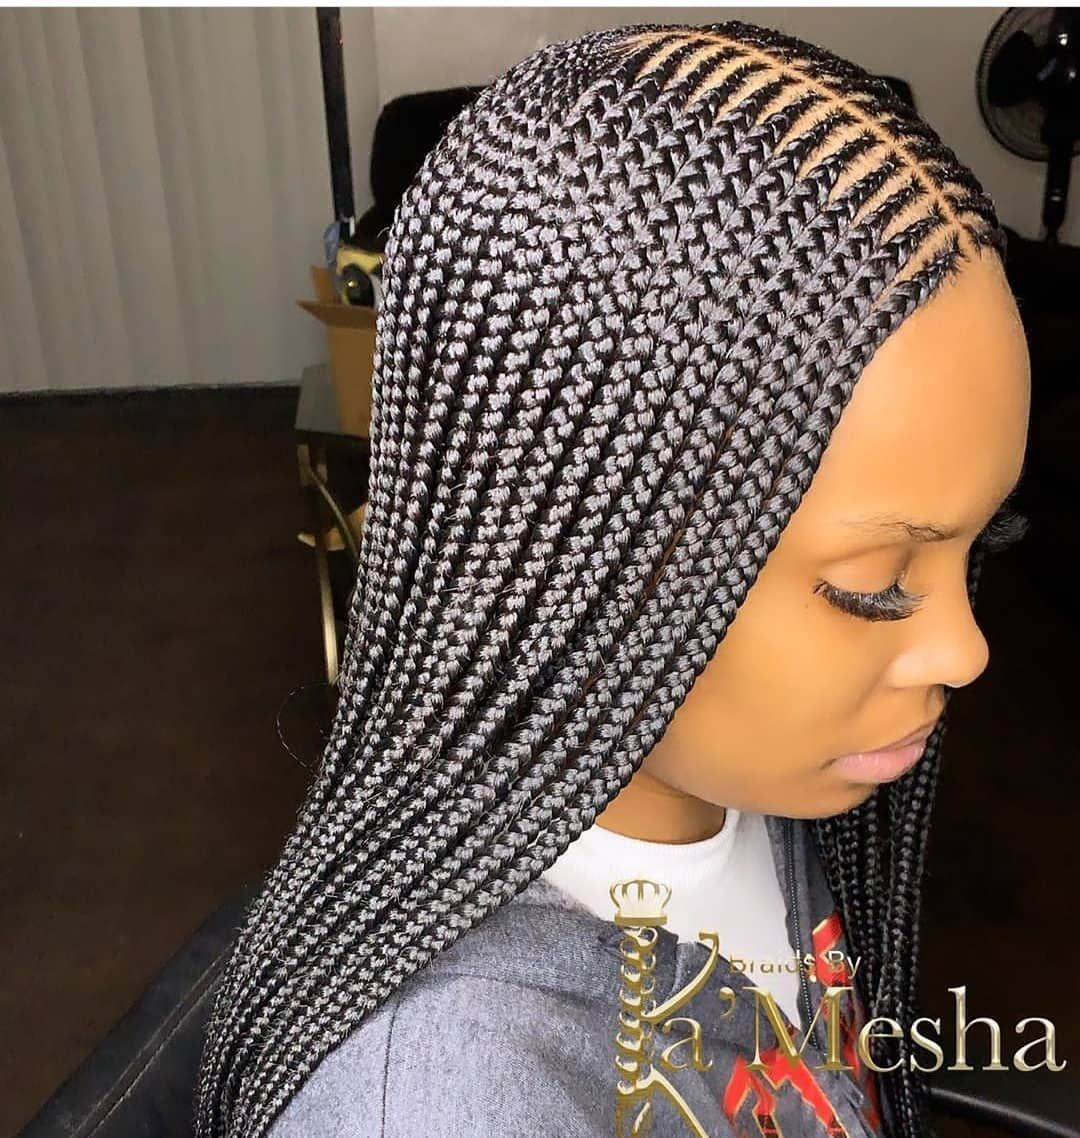 2020 Braided Hairstyles Wonderful Newest Hair Developments In 2020 African Braids Hairstyles African Hair Braiding Styles Braided Cornrow Hairstyles